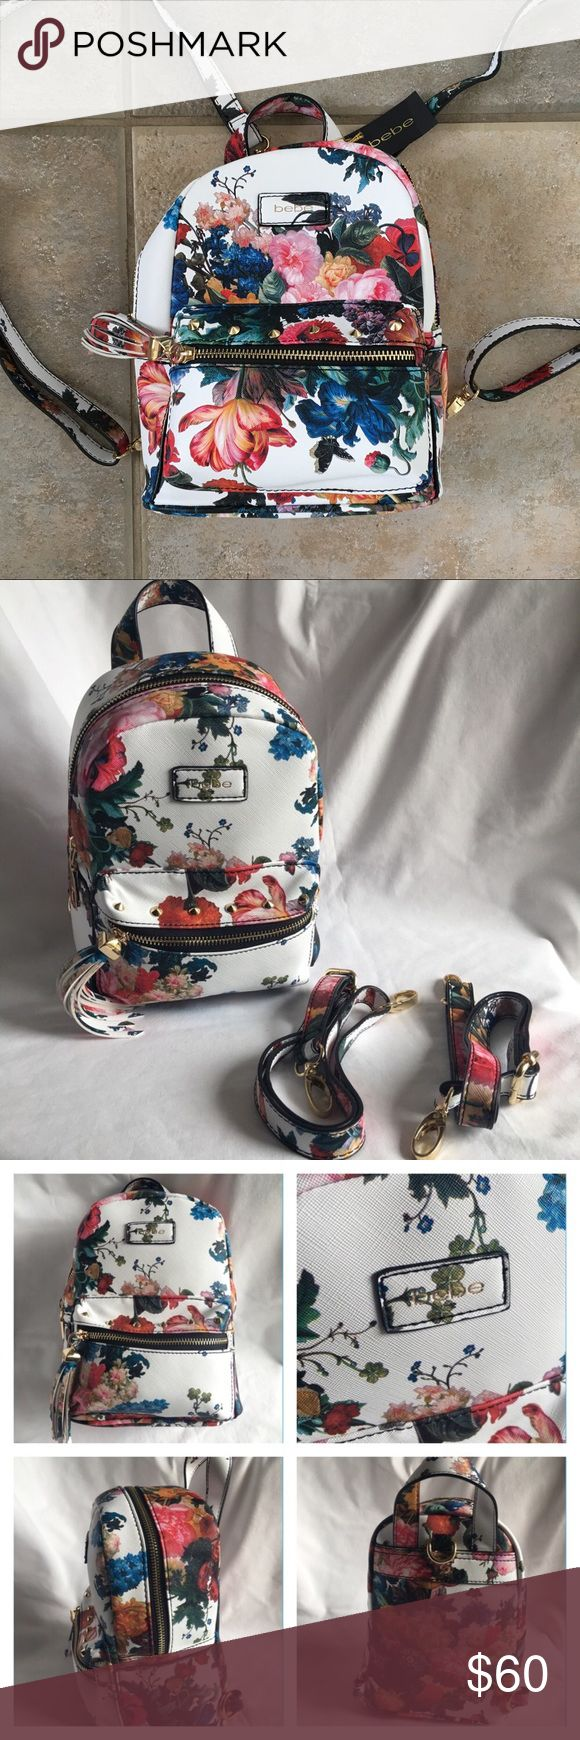 """bebe Mini Floral Backpack Melissa White NWT Brand new backpack/purse, never worn, with tag. Tag does not include original price, was a gift. Desiner: bebe Color: White with floral pattern Style: Mini Backpack Melissa Material: Canvas /PVC/Polyvinyl Chloride (exterior); Polyester (lining) Height: 9 1/2"""" inches Width: 8"""" inches Length: 5"""" inches Detachable shoulder straps bebe Bags Backpacks"""